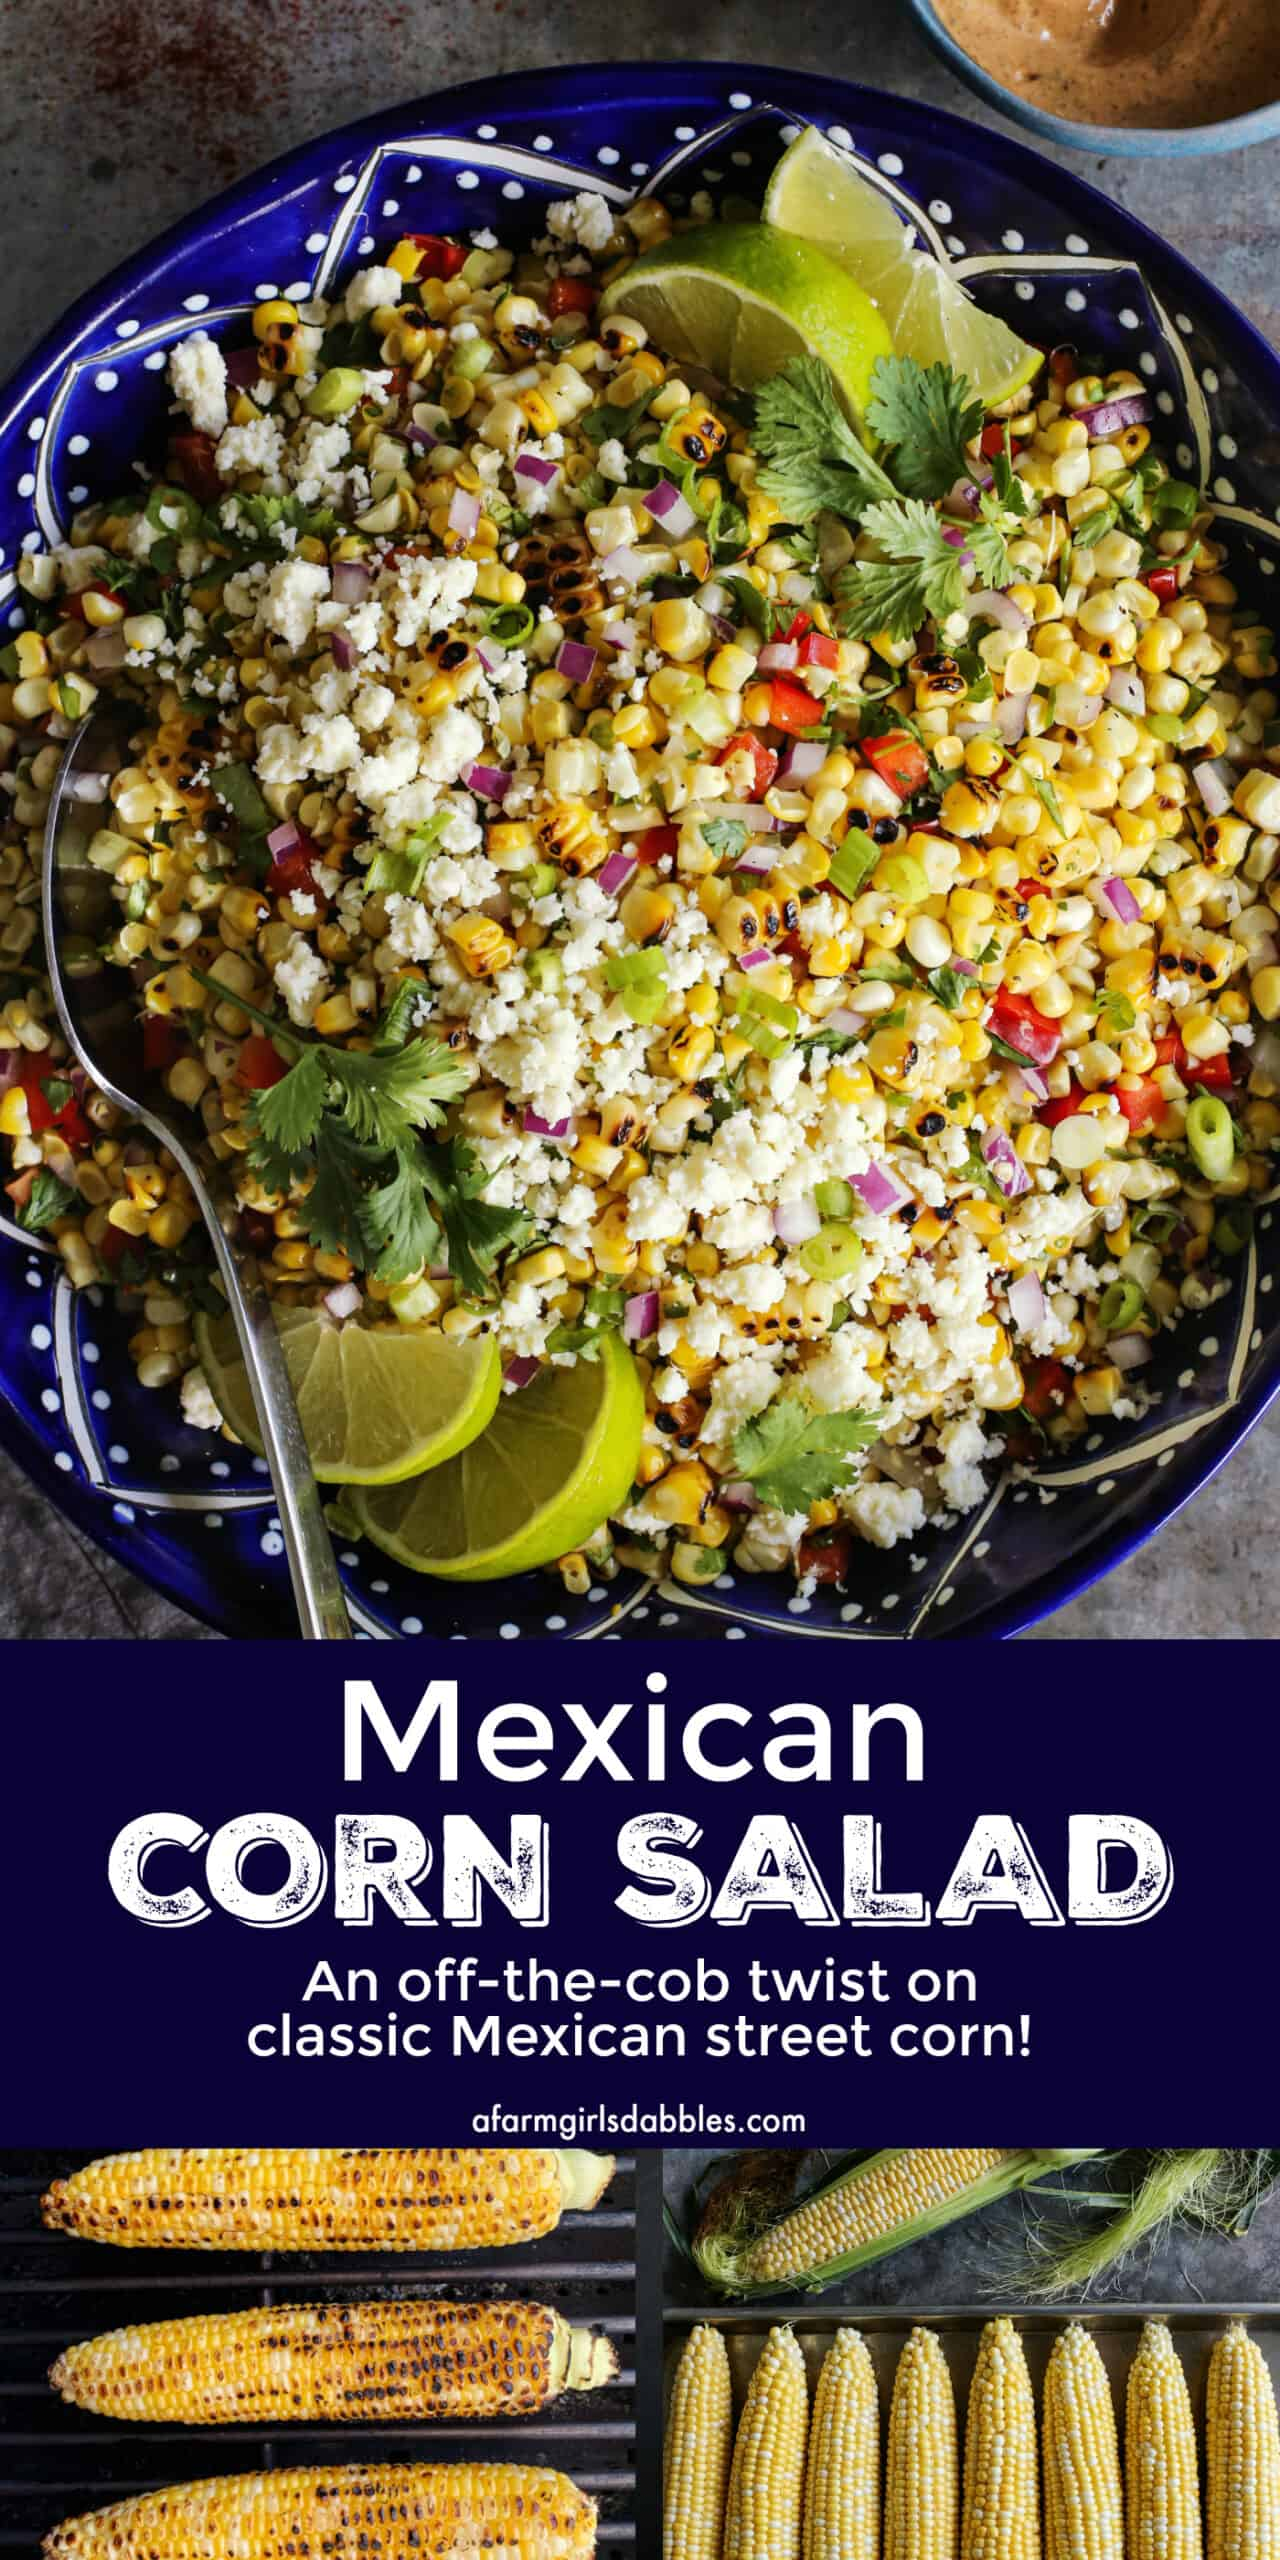 Pinterest image of Mexican corn salad